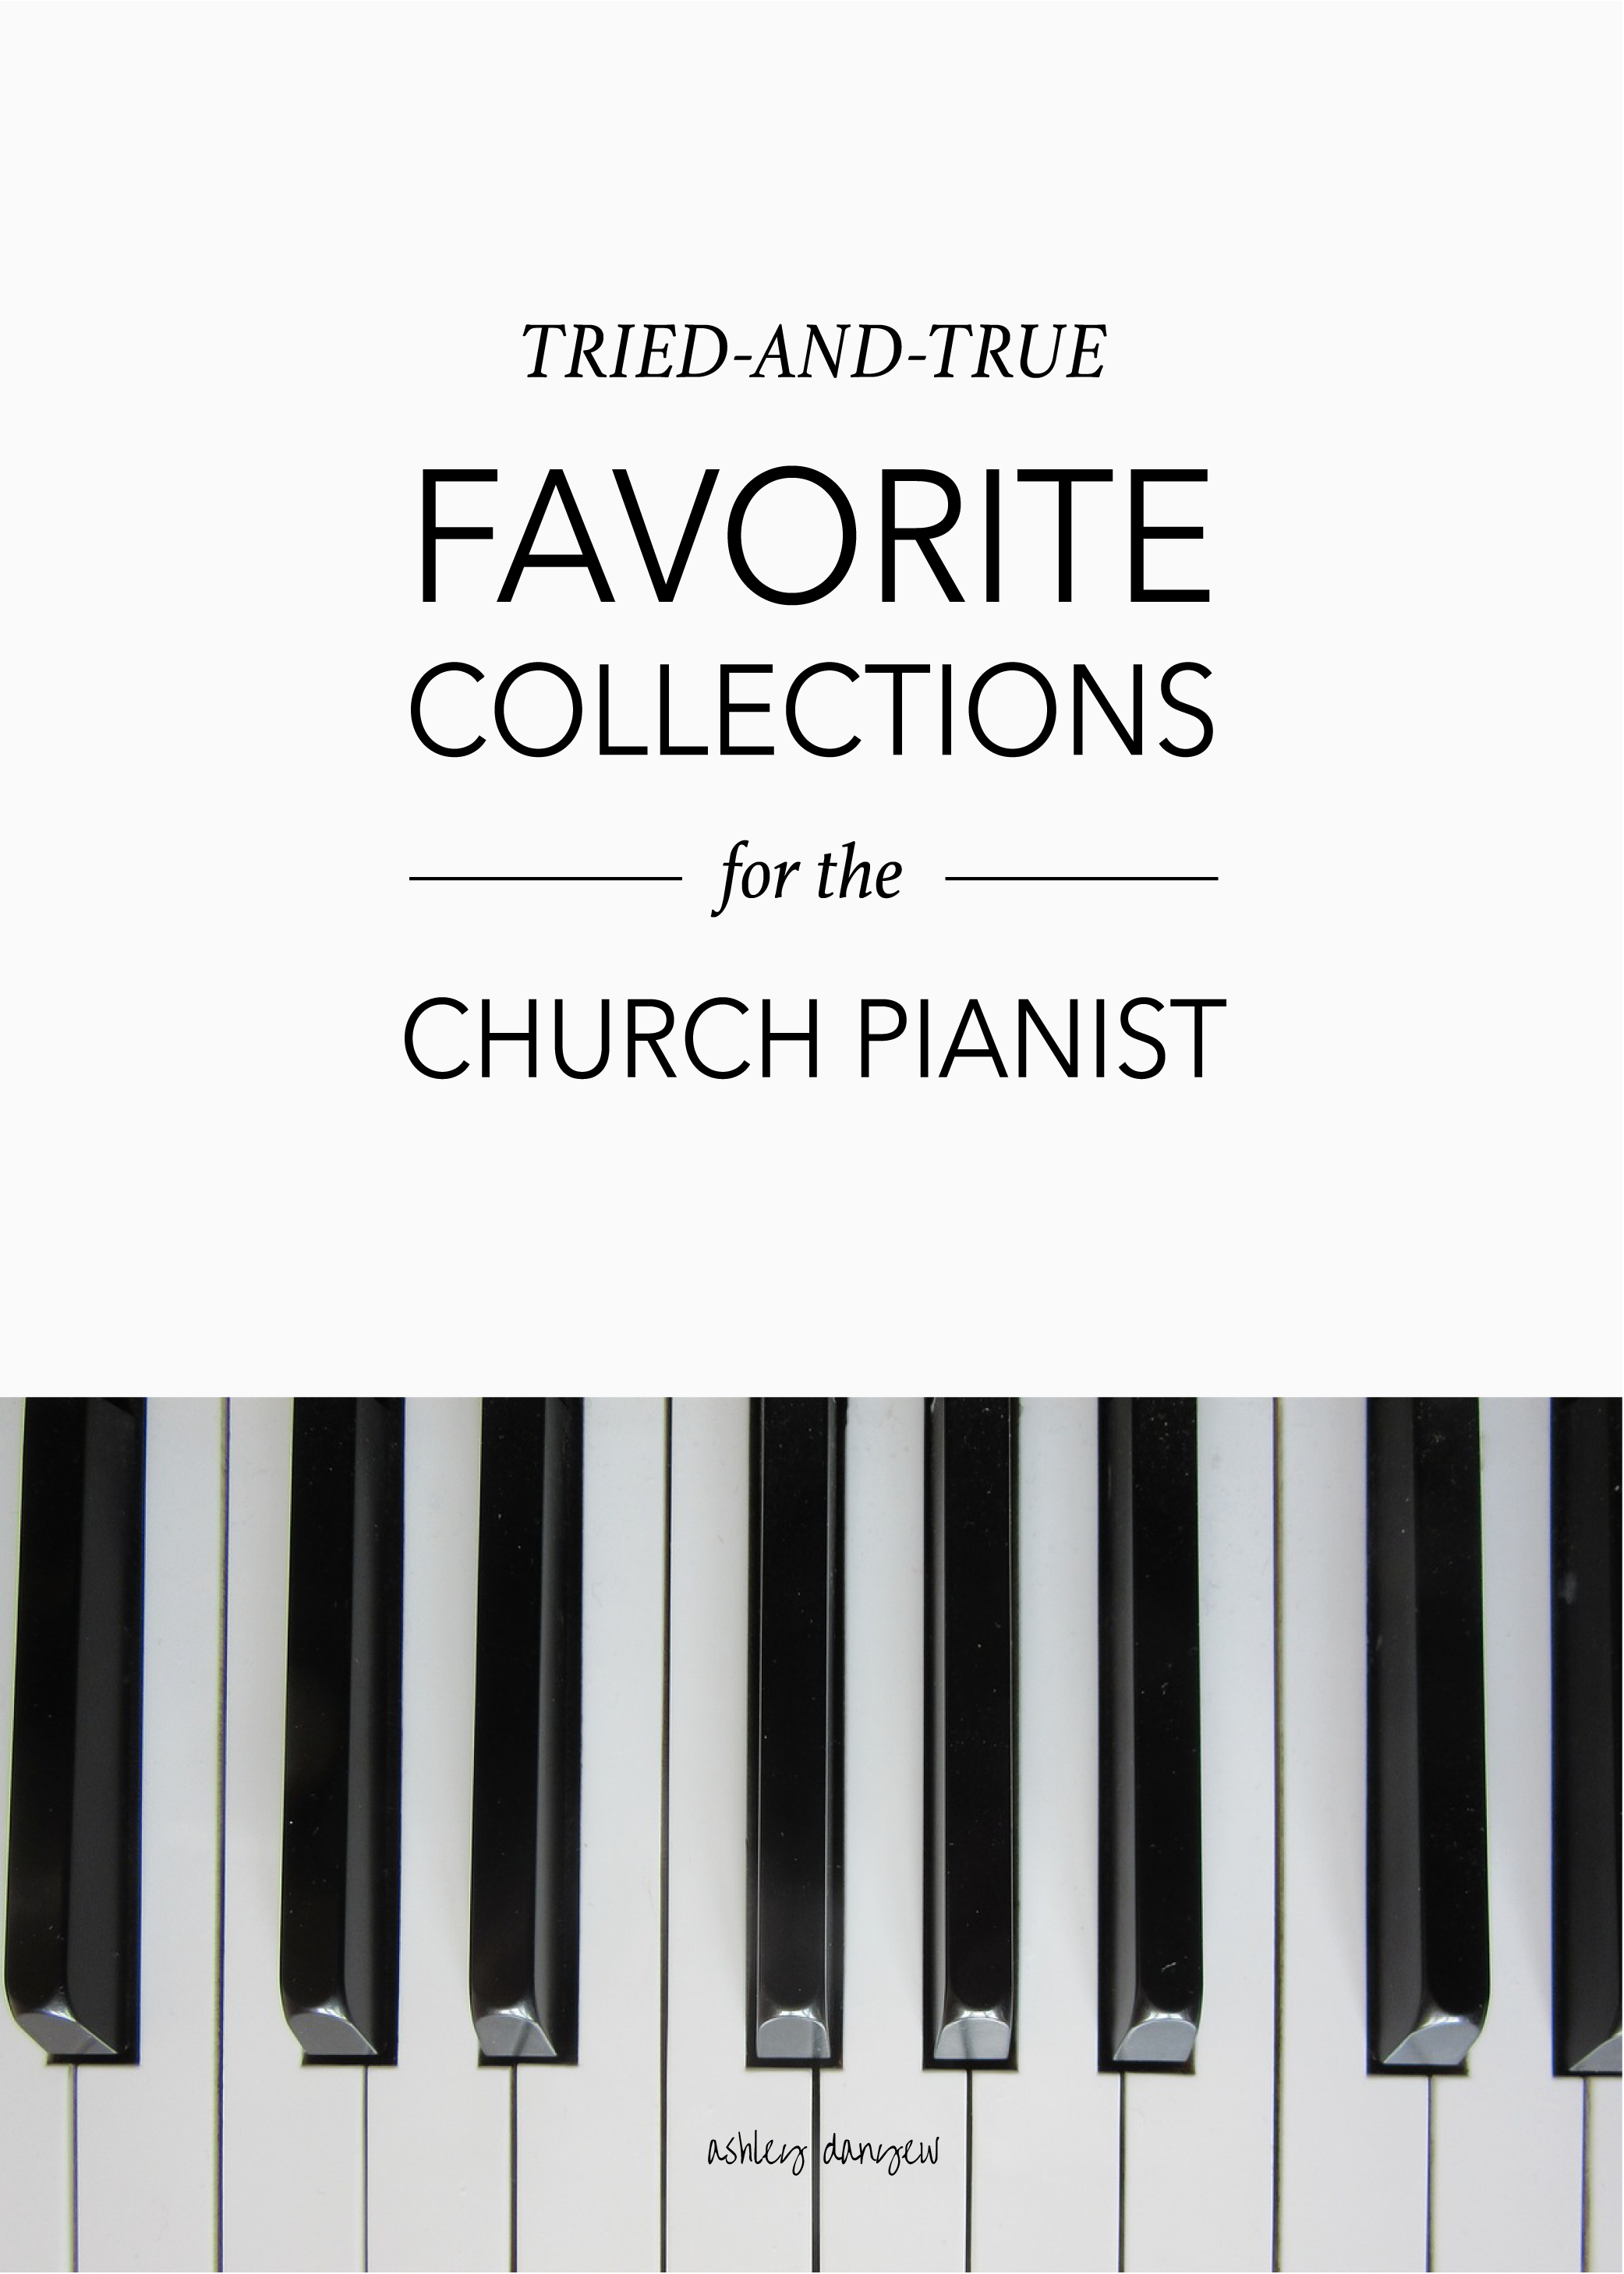 Copy of Tried-and-True Favorite Collections for the Church Pianist